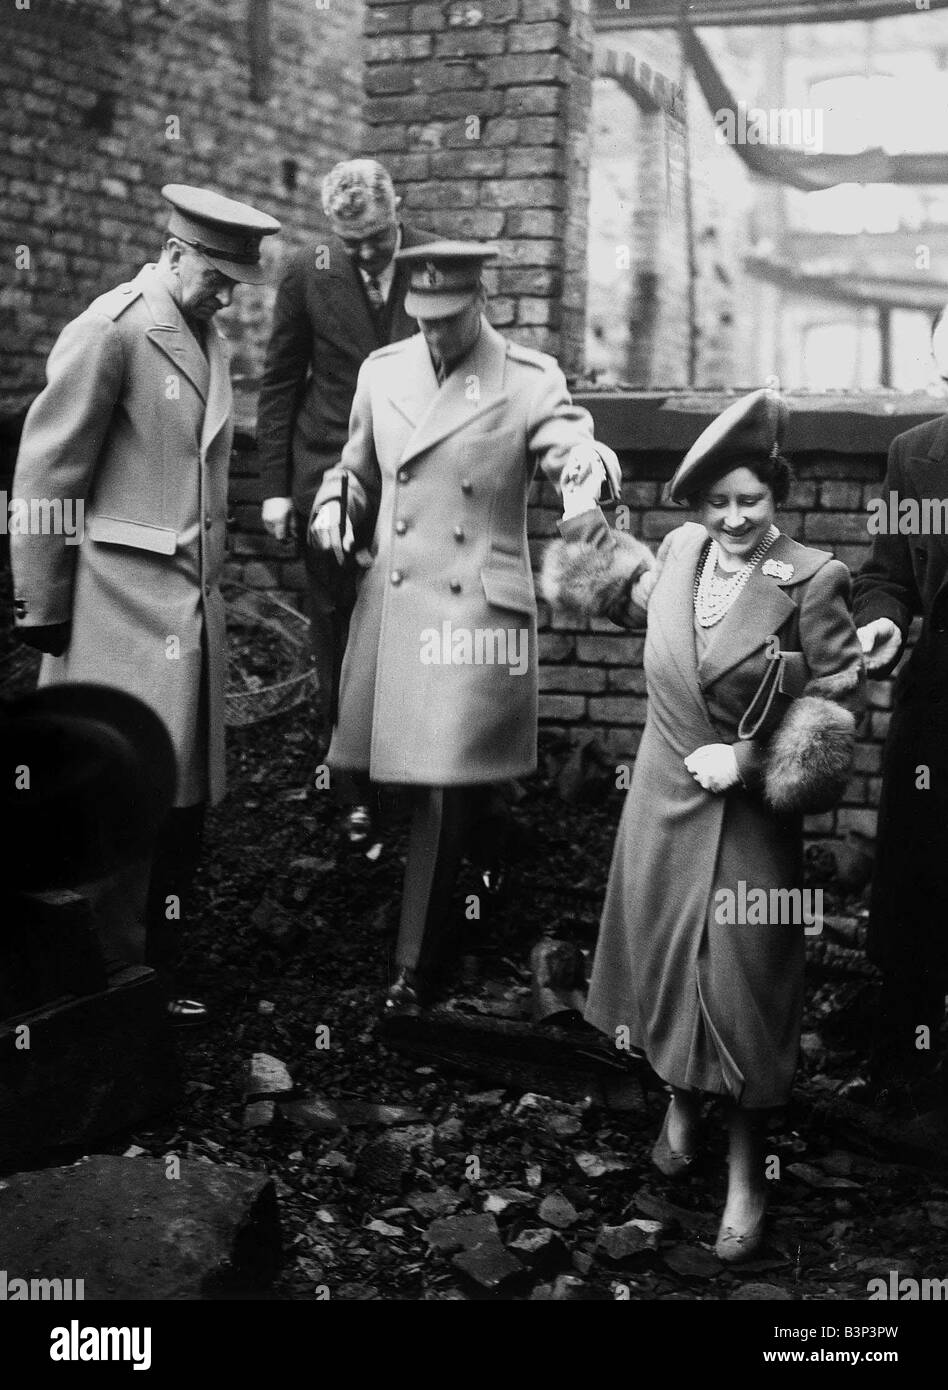 King George VI and Queen Elizabeth Queen Mother visit bomb damaged London 1940s - Stock Image